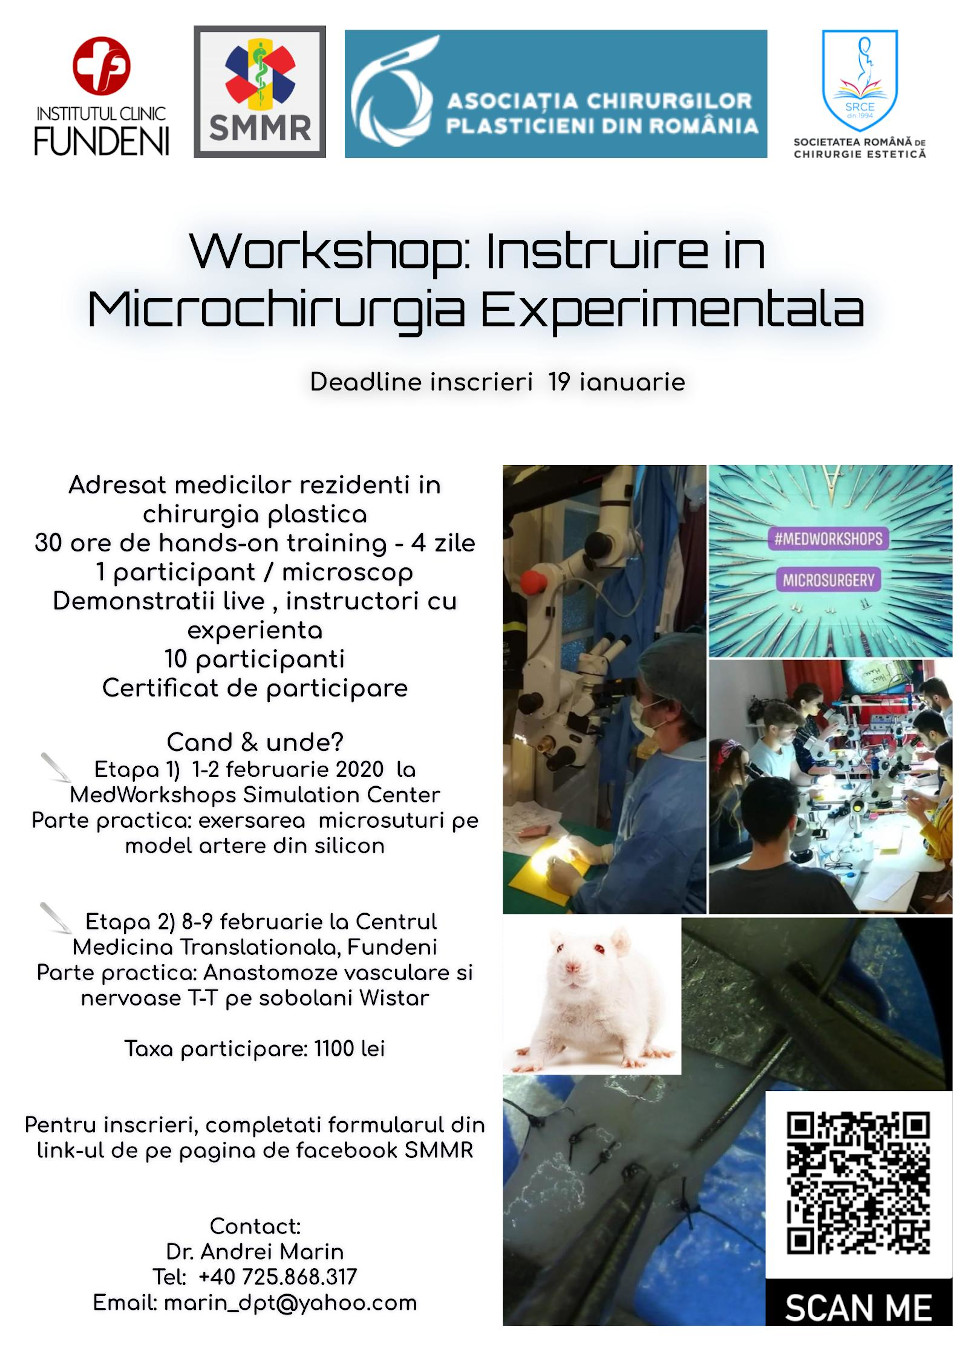 Workshop de microchirurgie